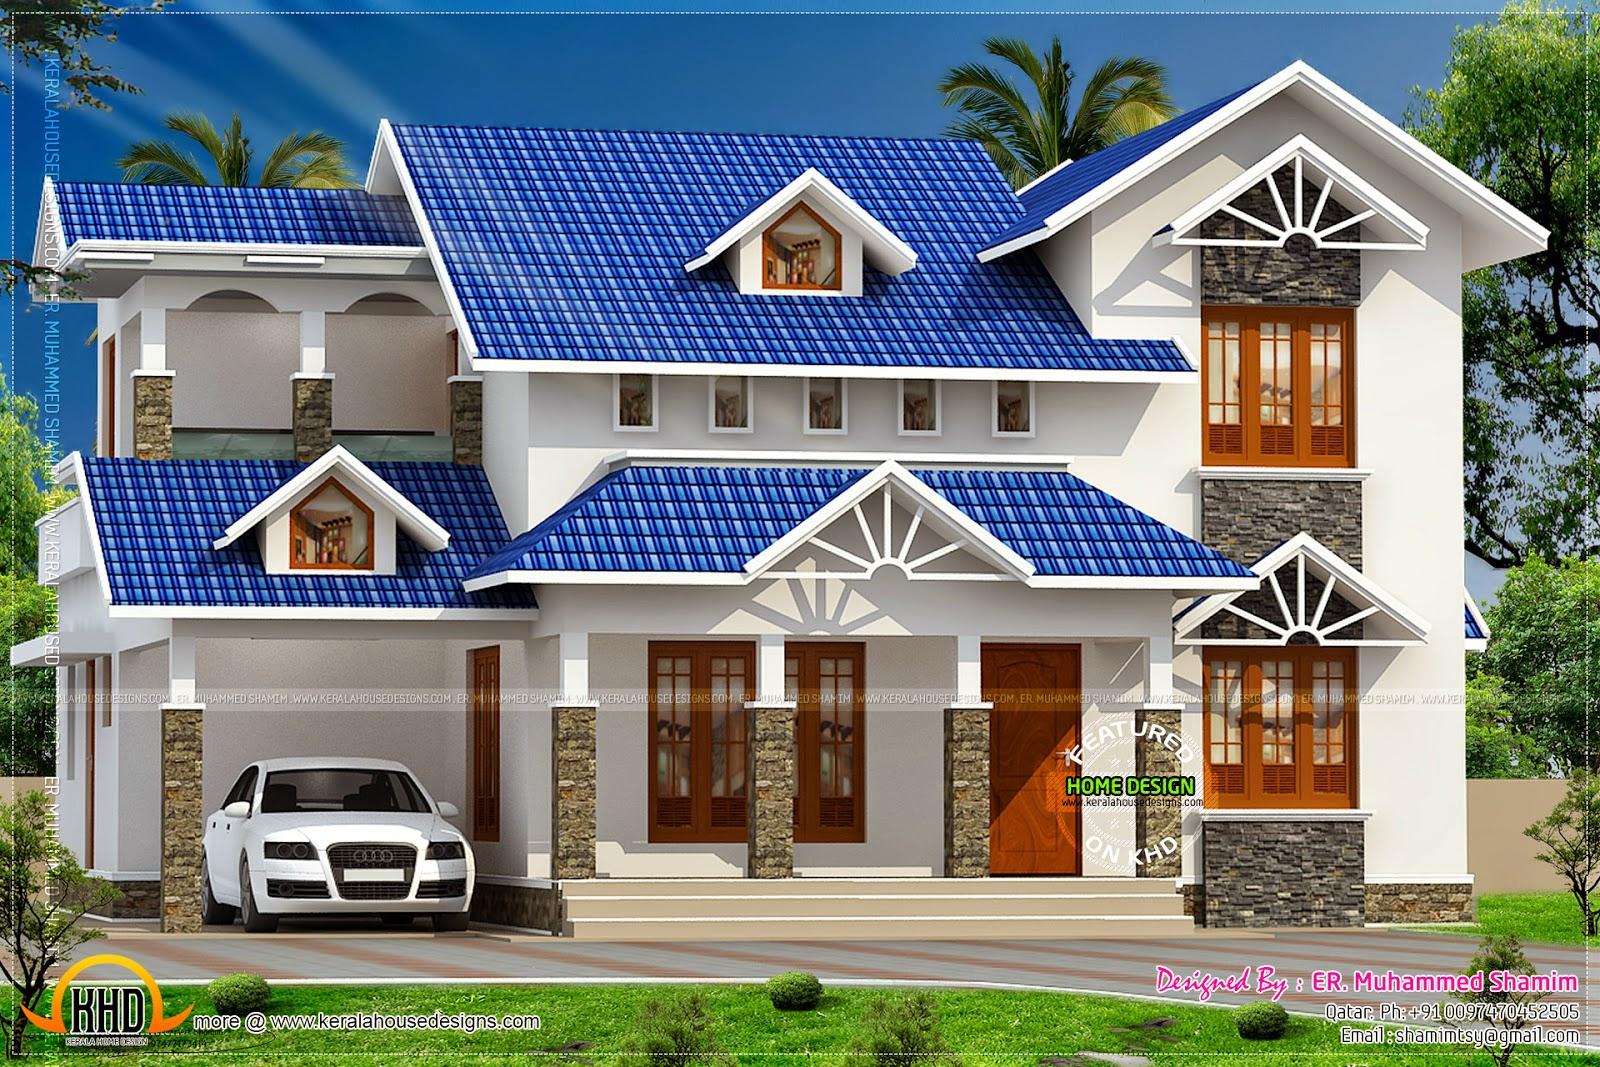 Kerala home design and floor plans Nice sloped roof